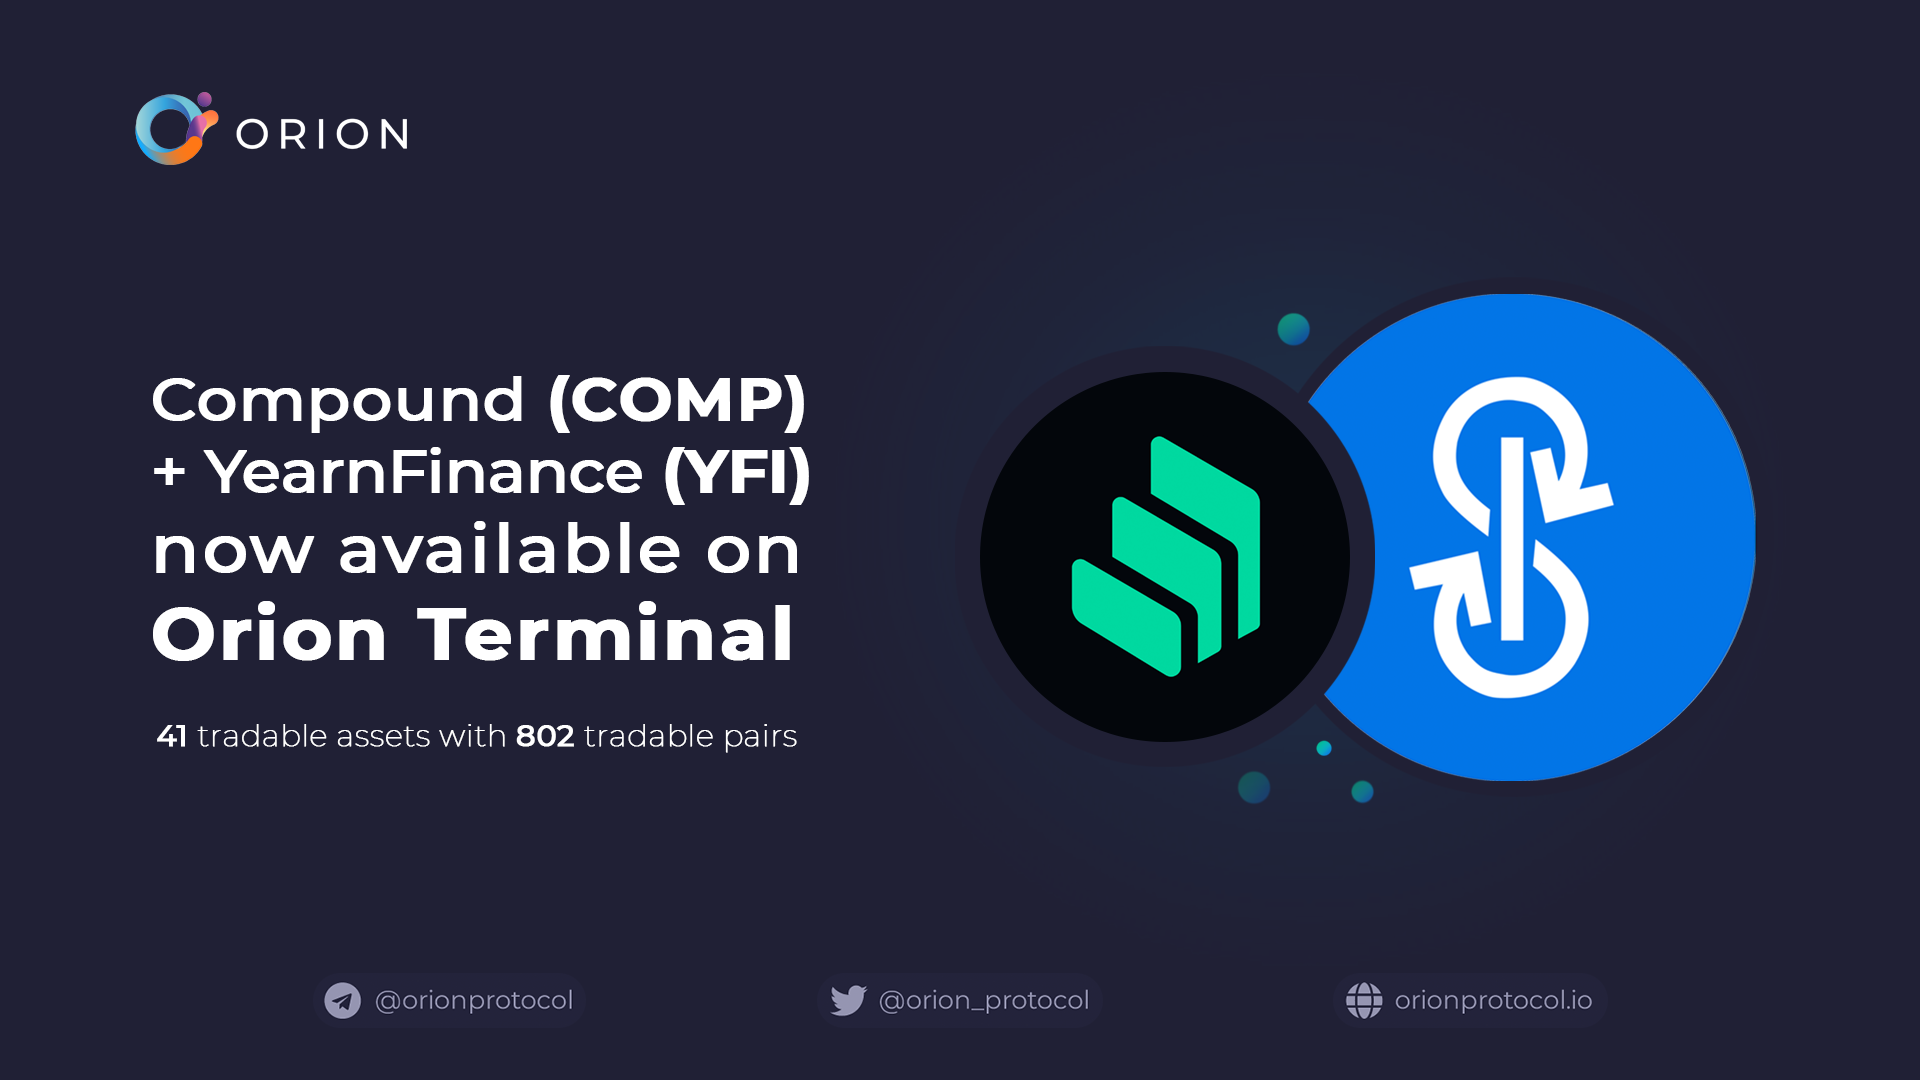 YFI + COMP added to Orion Terminal